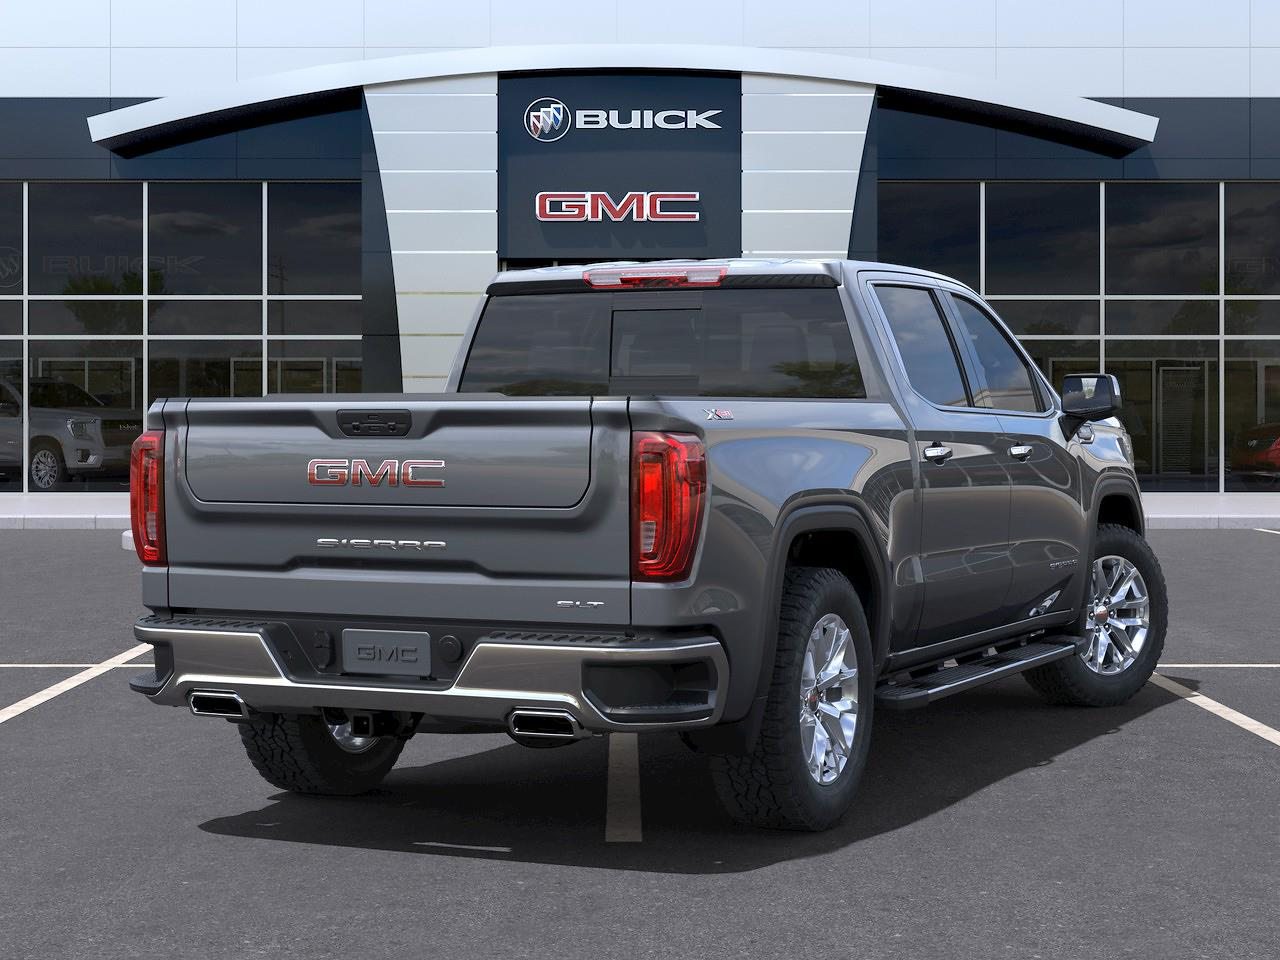 2021 GMC Sierra 1500 Crew Cab 4x4, Pickup #23617 - photo 2